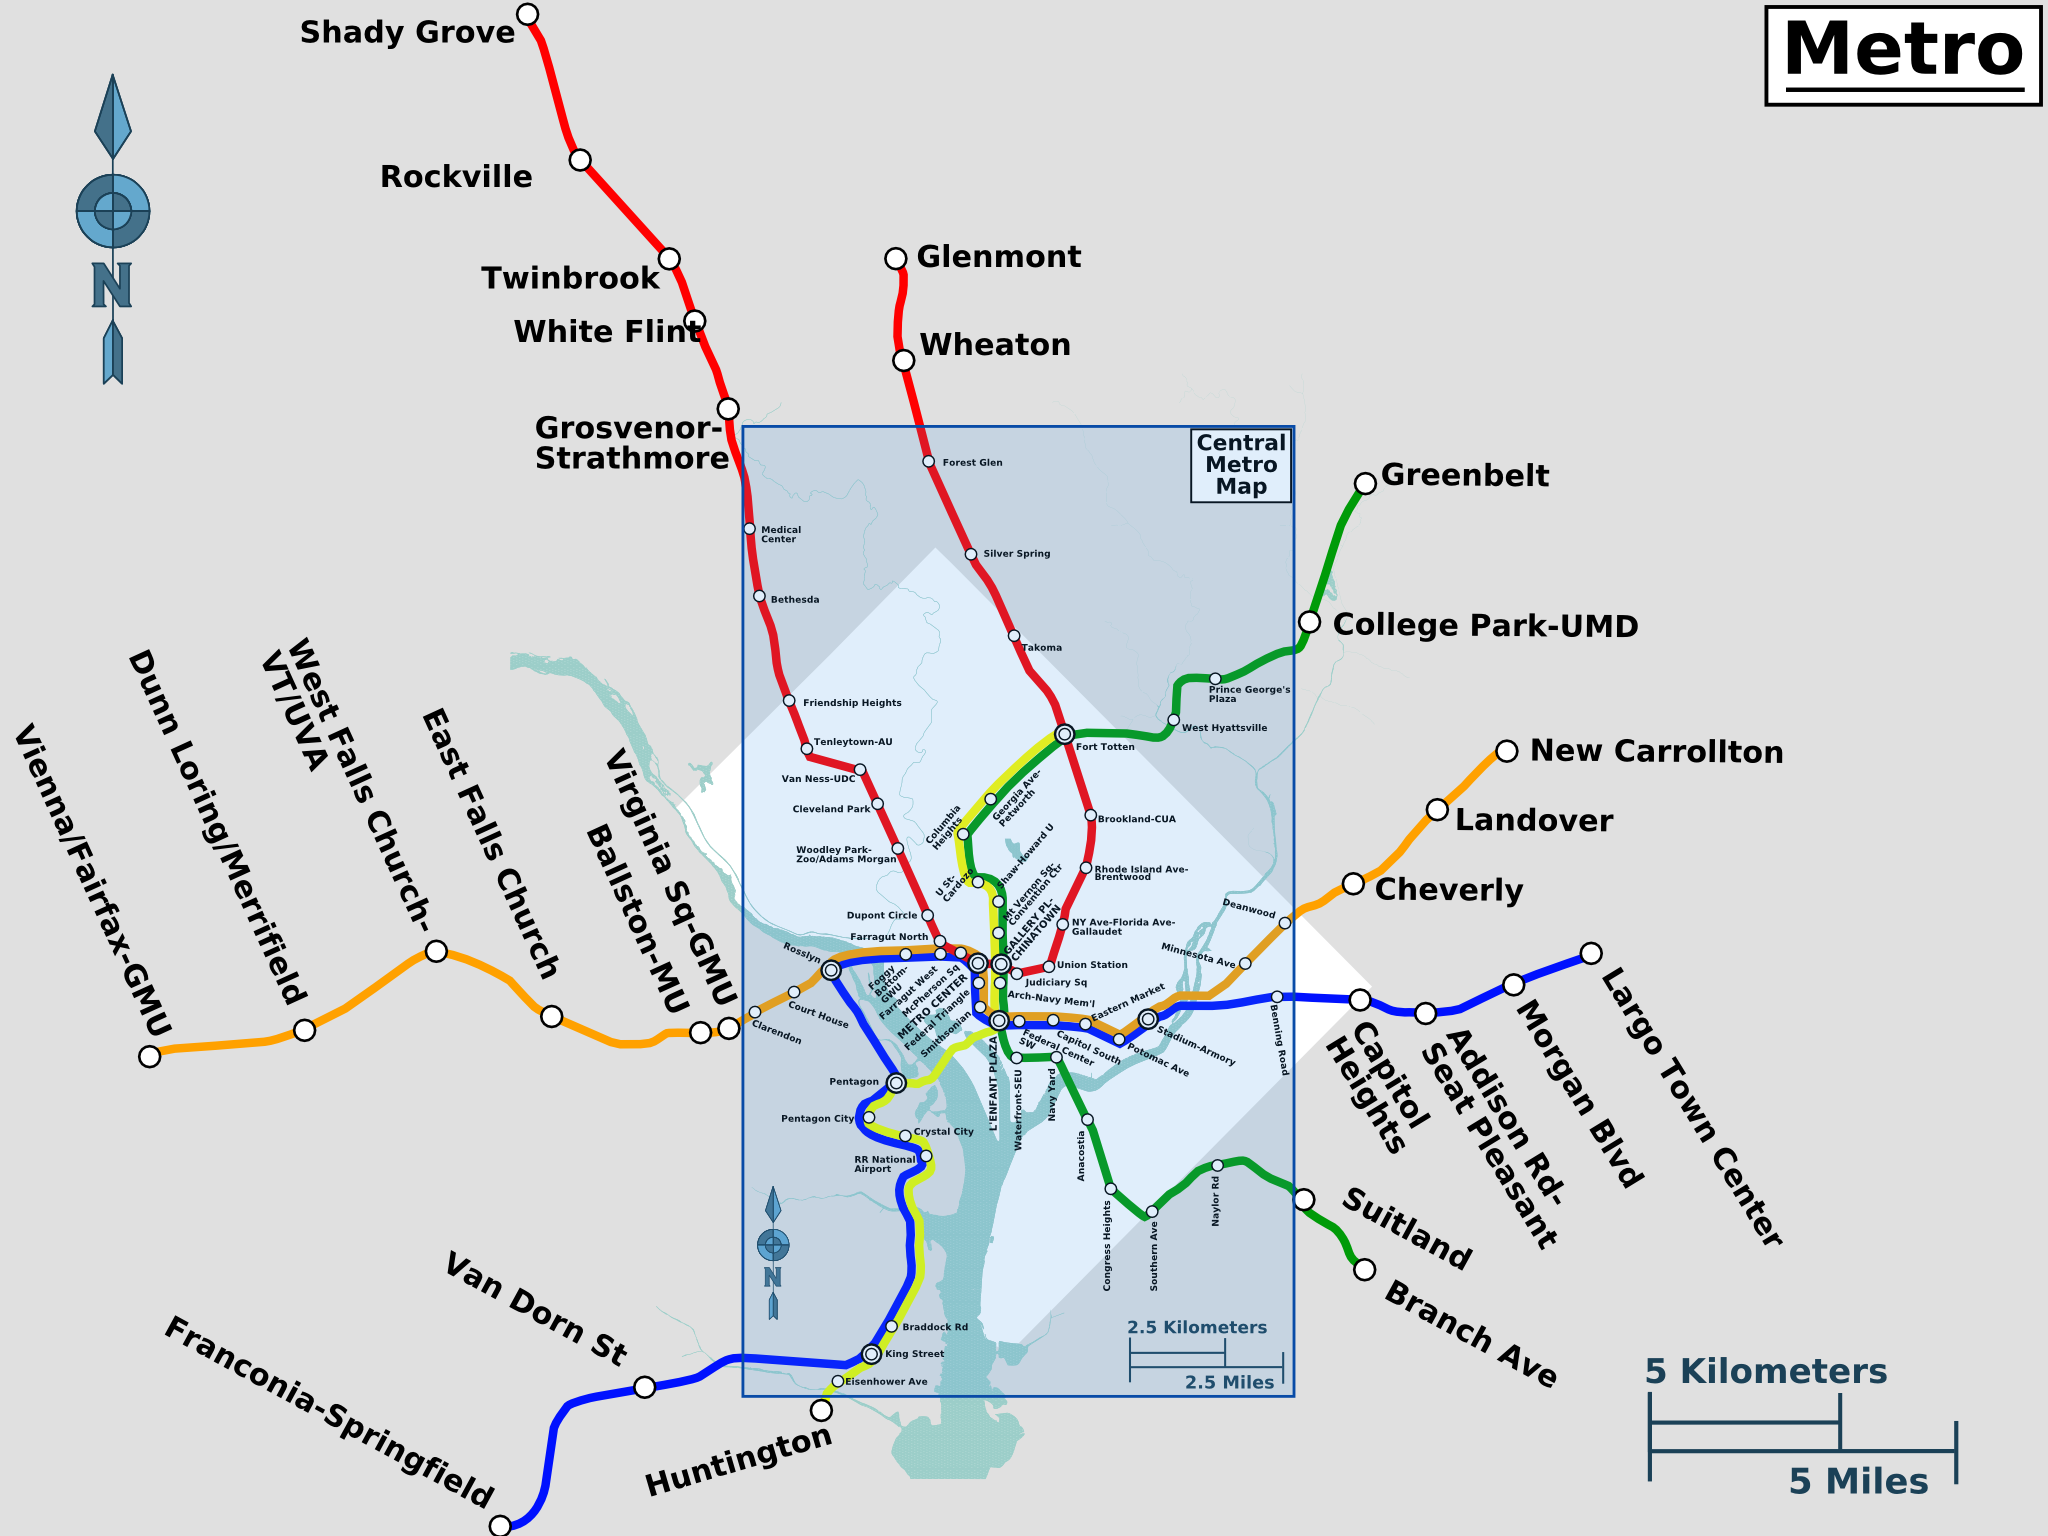 FileOuter Metro system map to scalepng Wikimedia Commons